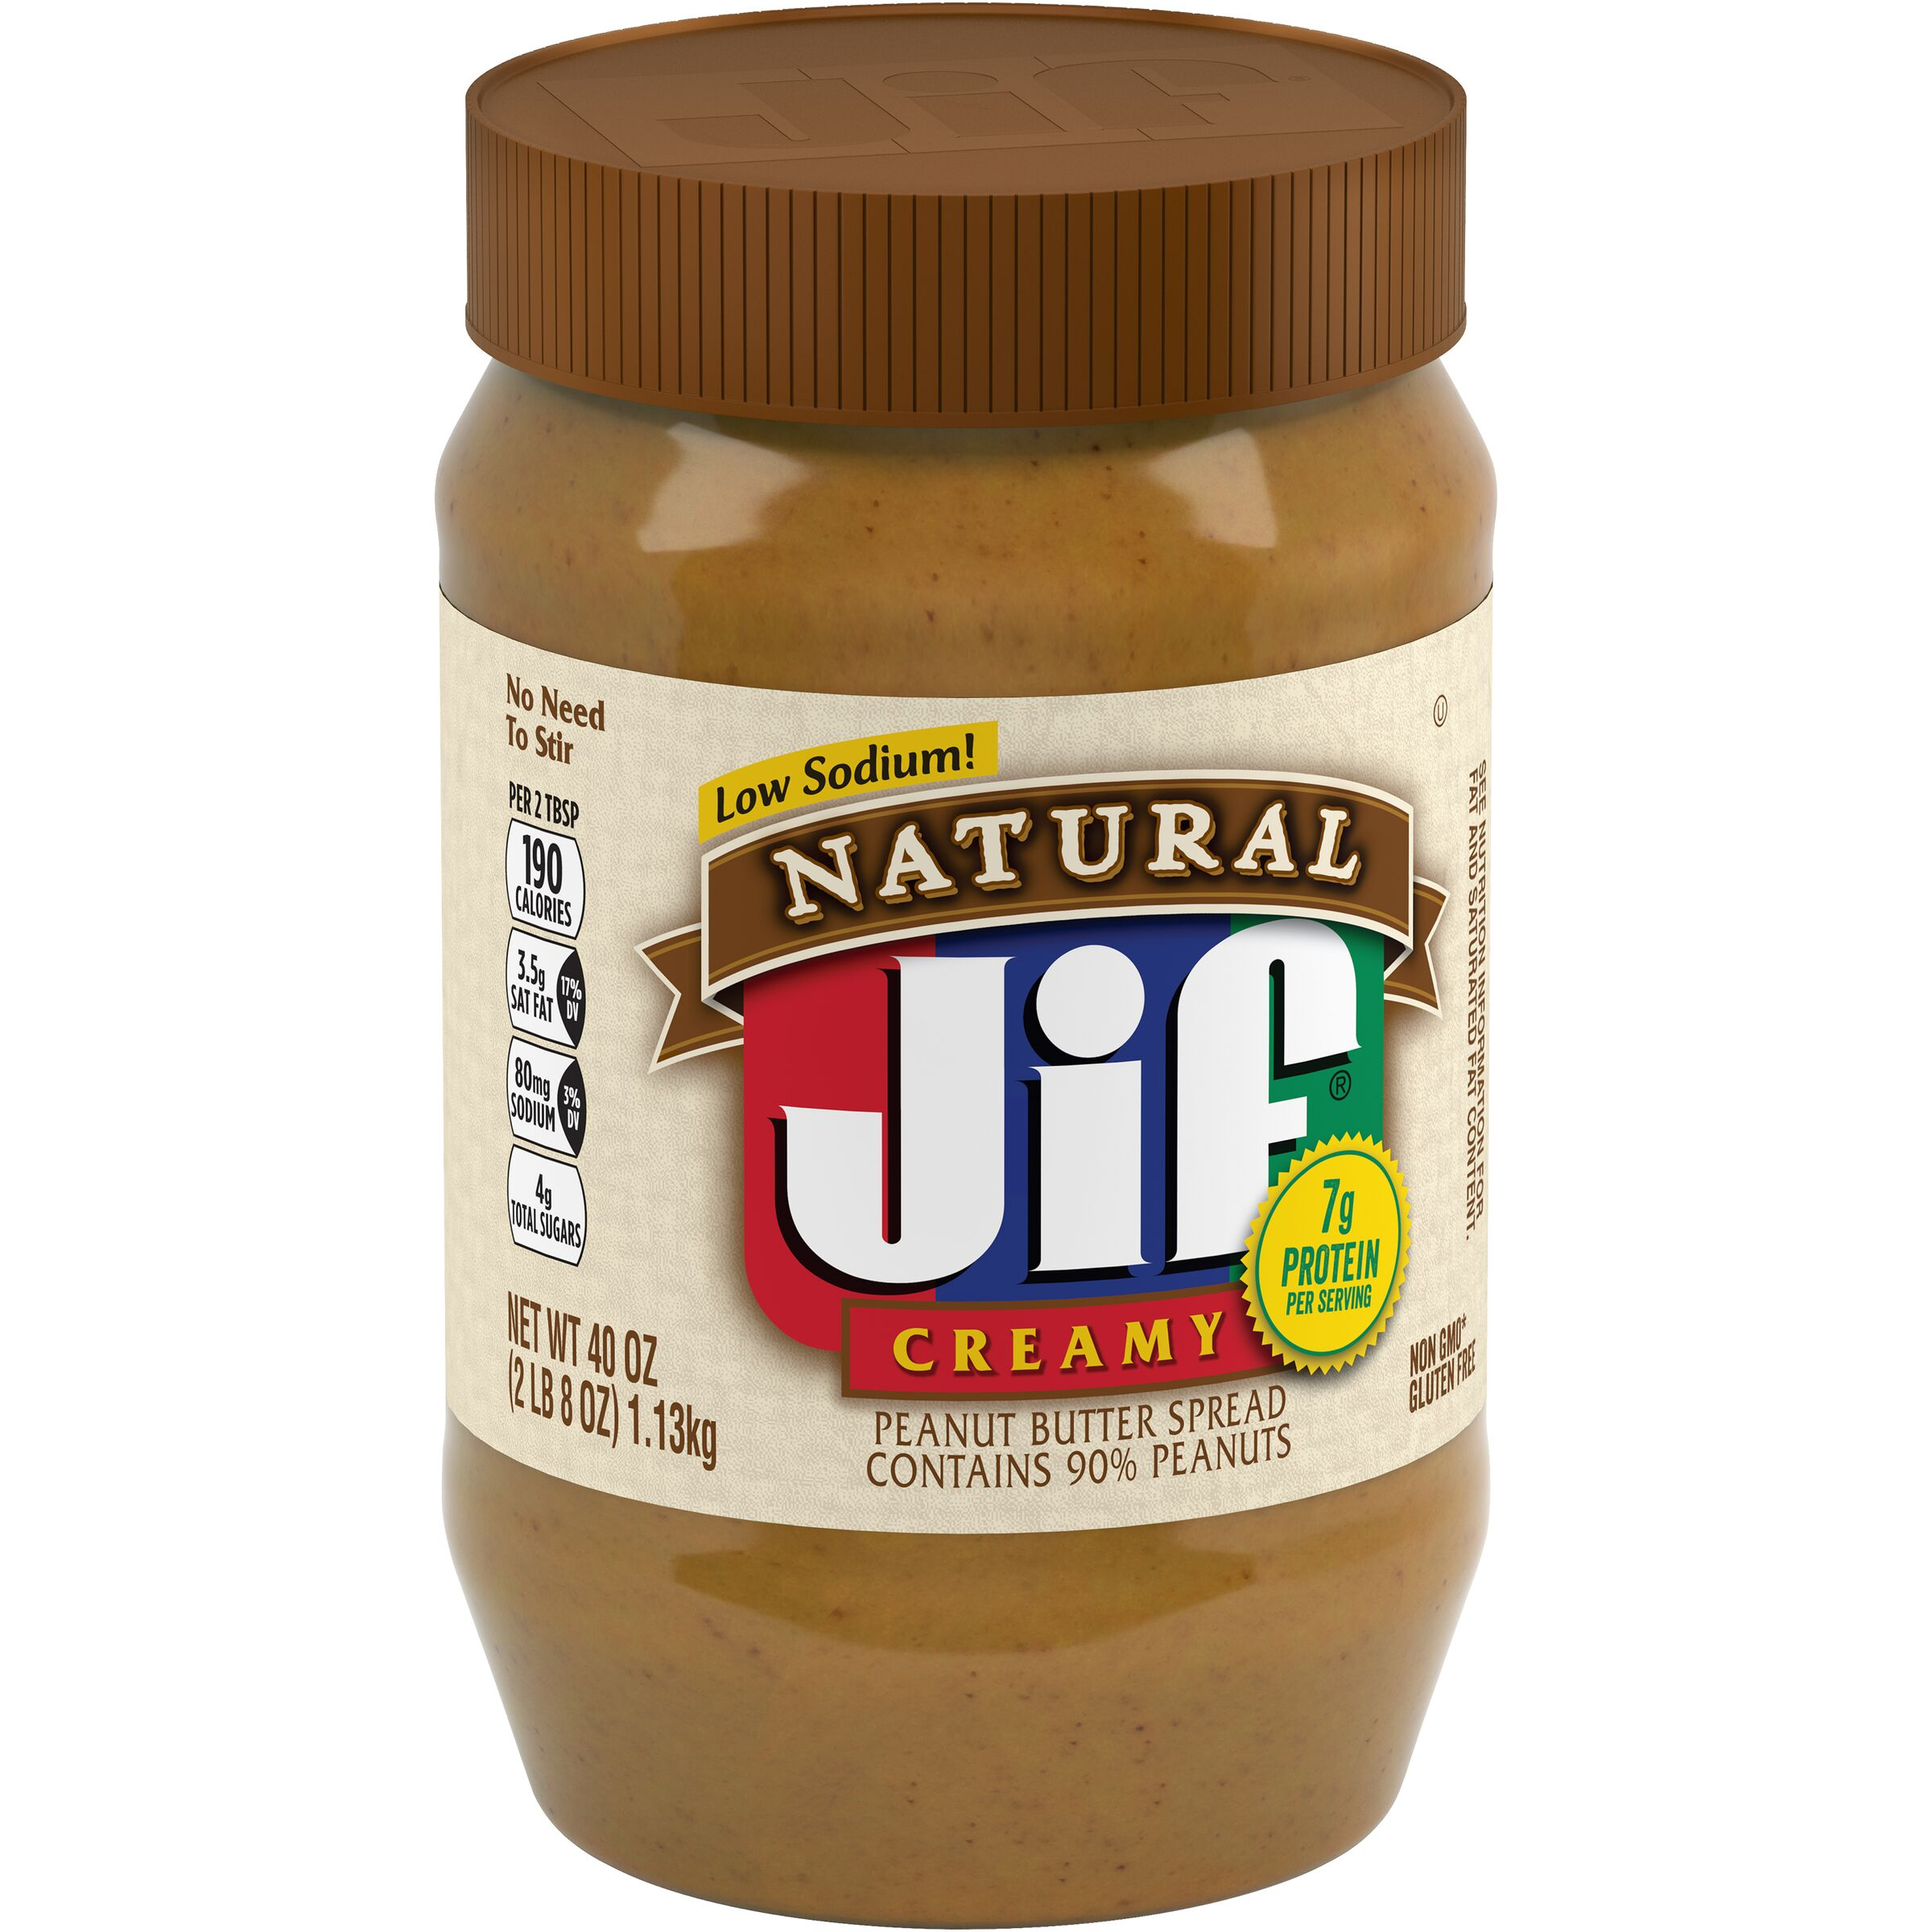 Jif<sup>®</sup> Natural Creamy Peanut Butter Spread Contains 90% Peanuts